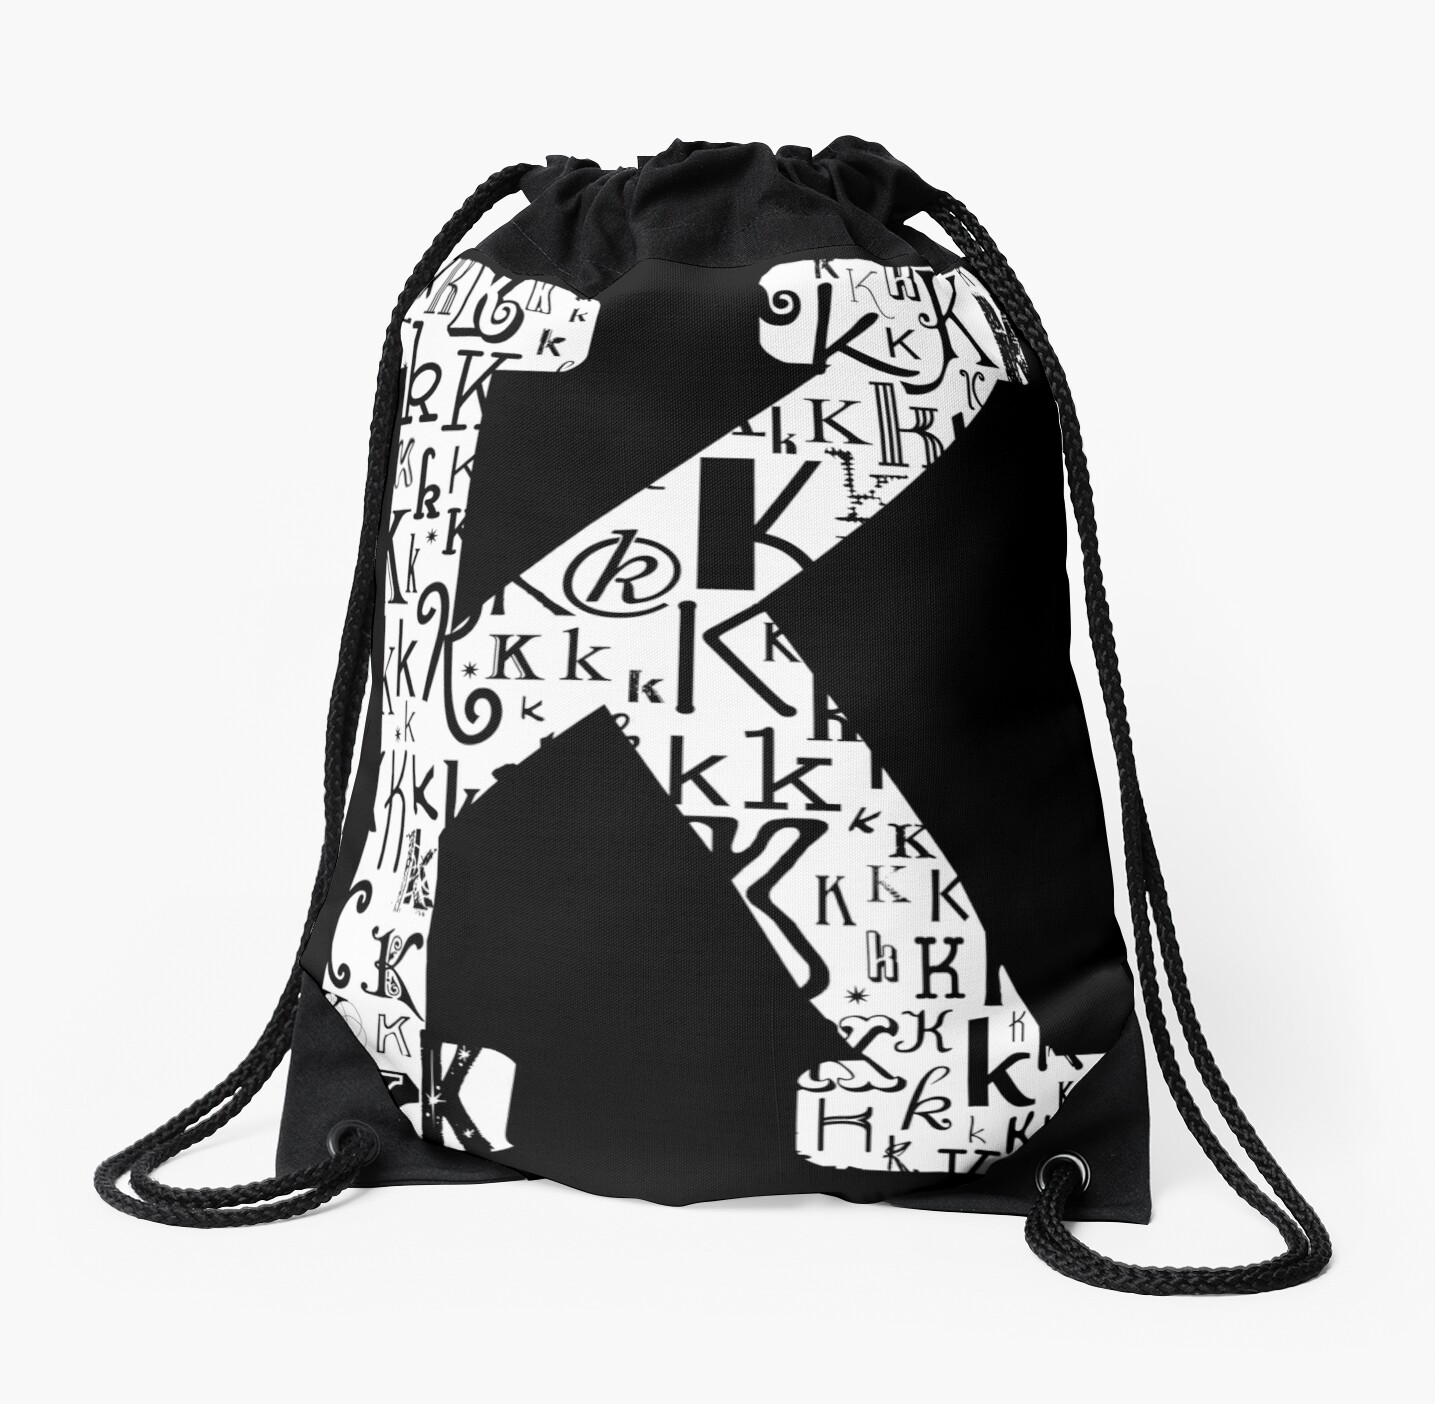 The Letter K Black Background Drawstring Bags By Julie Hartman